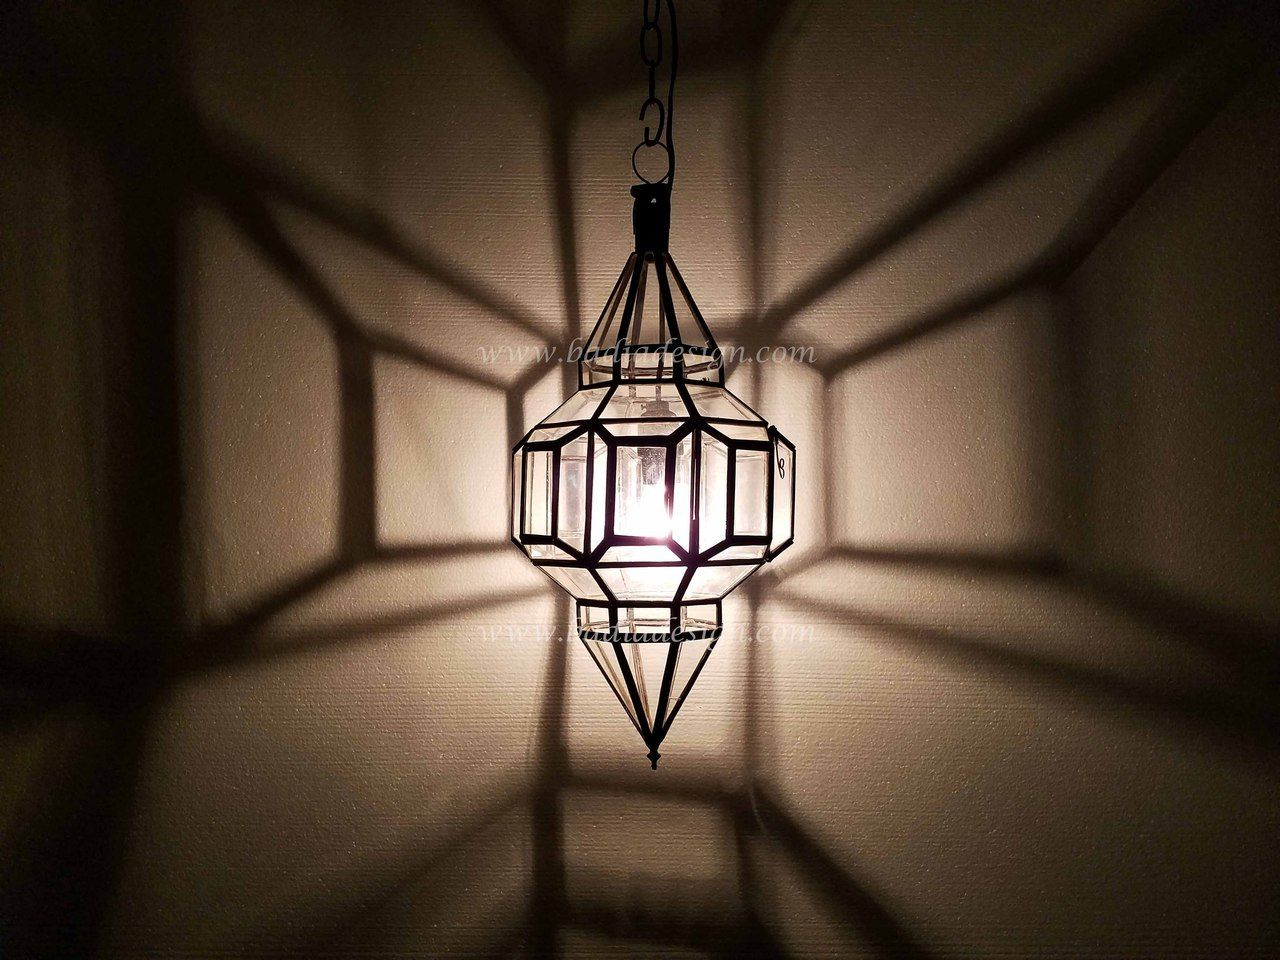 Marvelous Badia Design Inc Store   Hanging Lantern With Clear Glass   LIG212, (http: Amazing Design